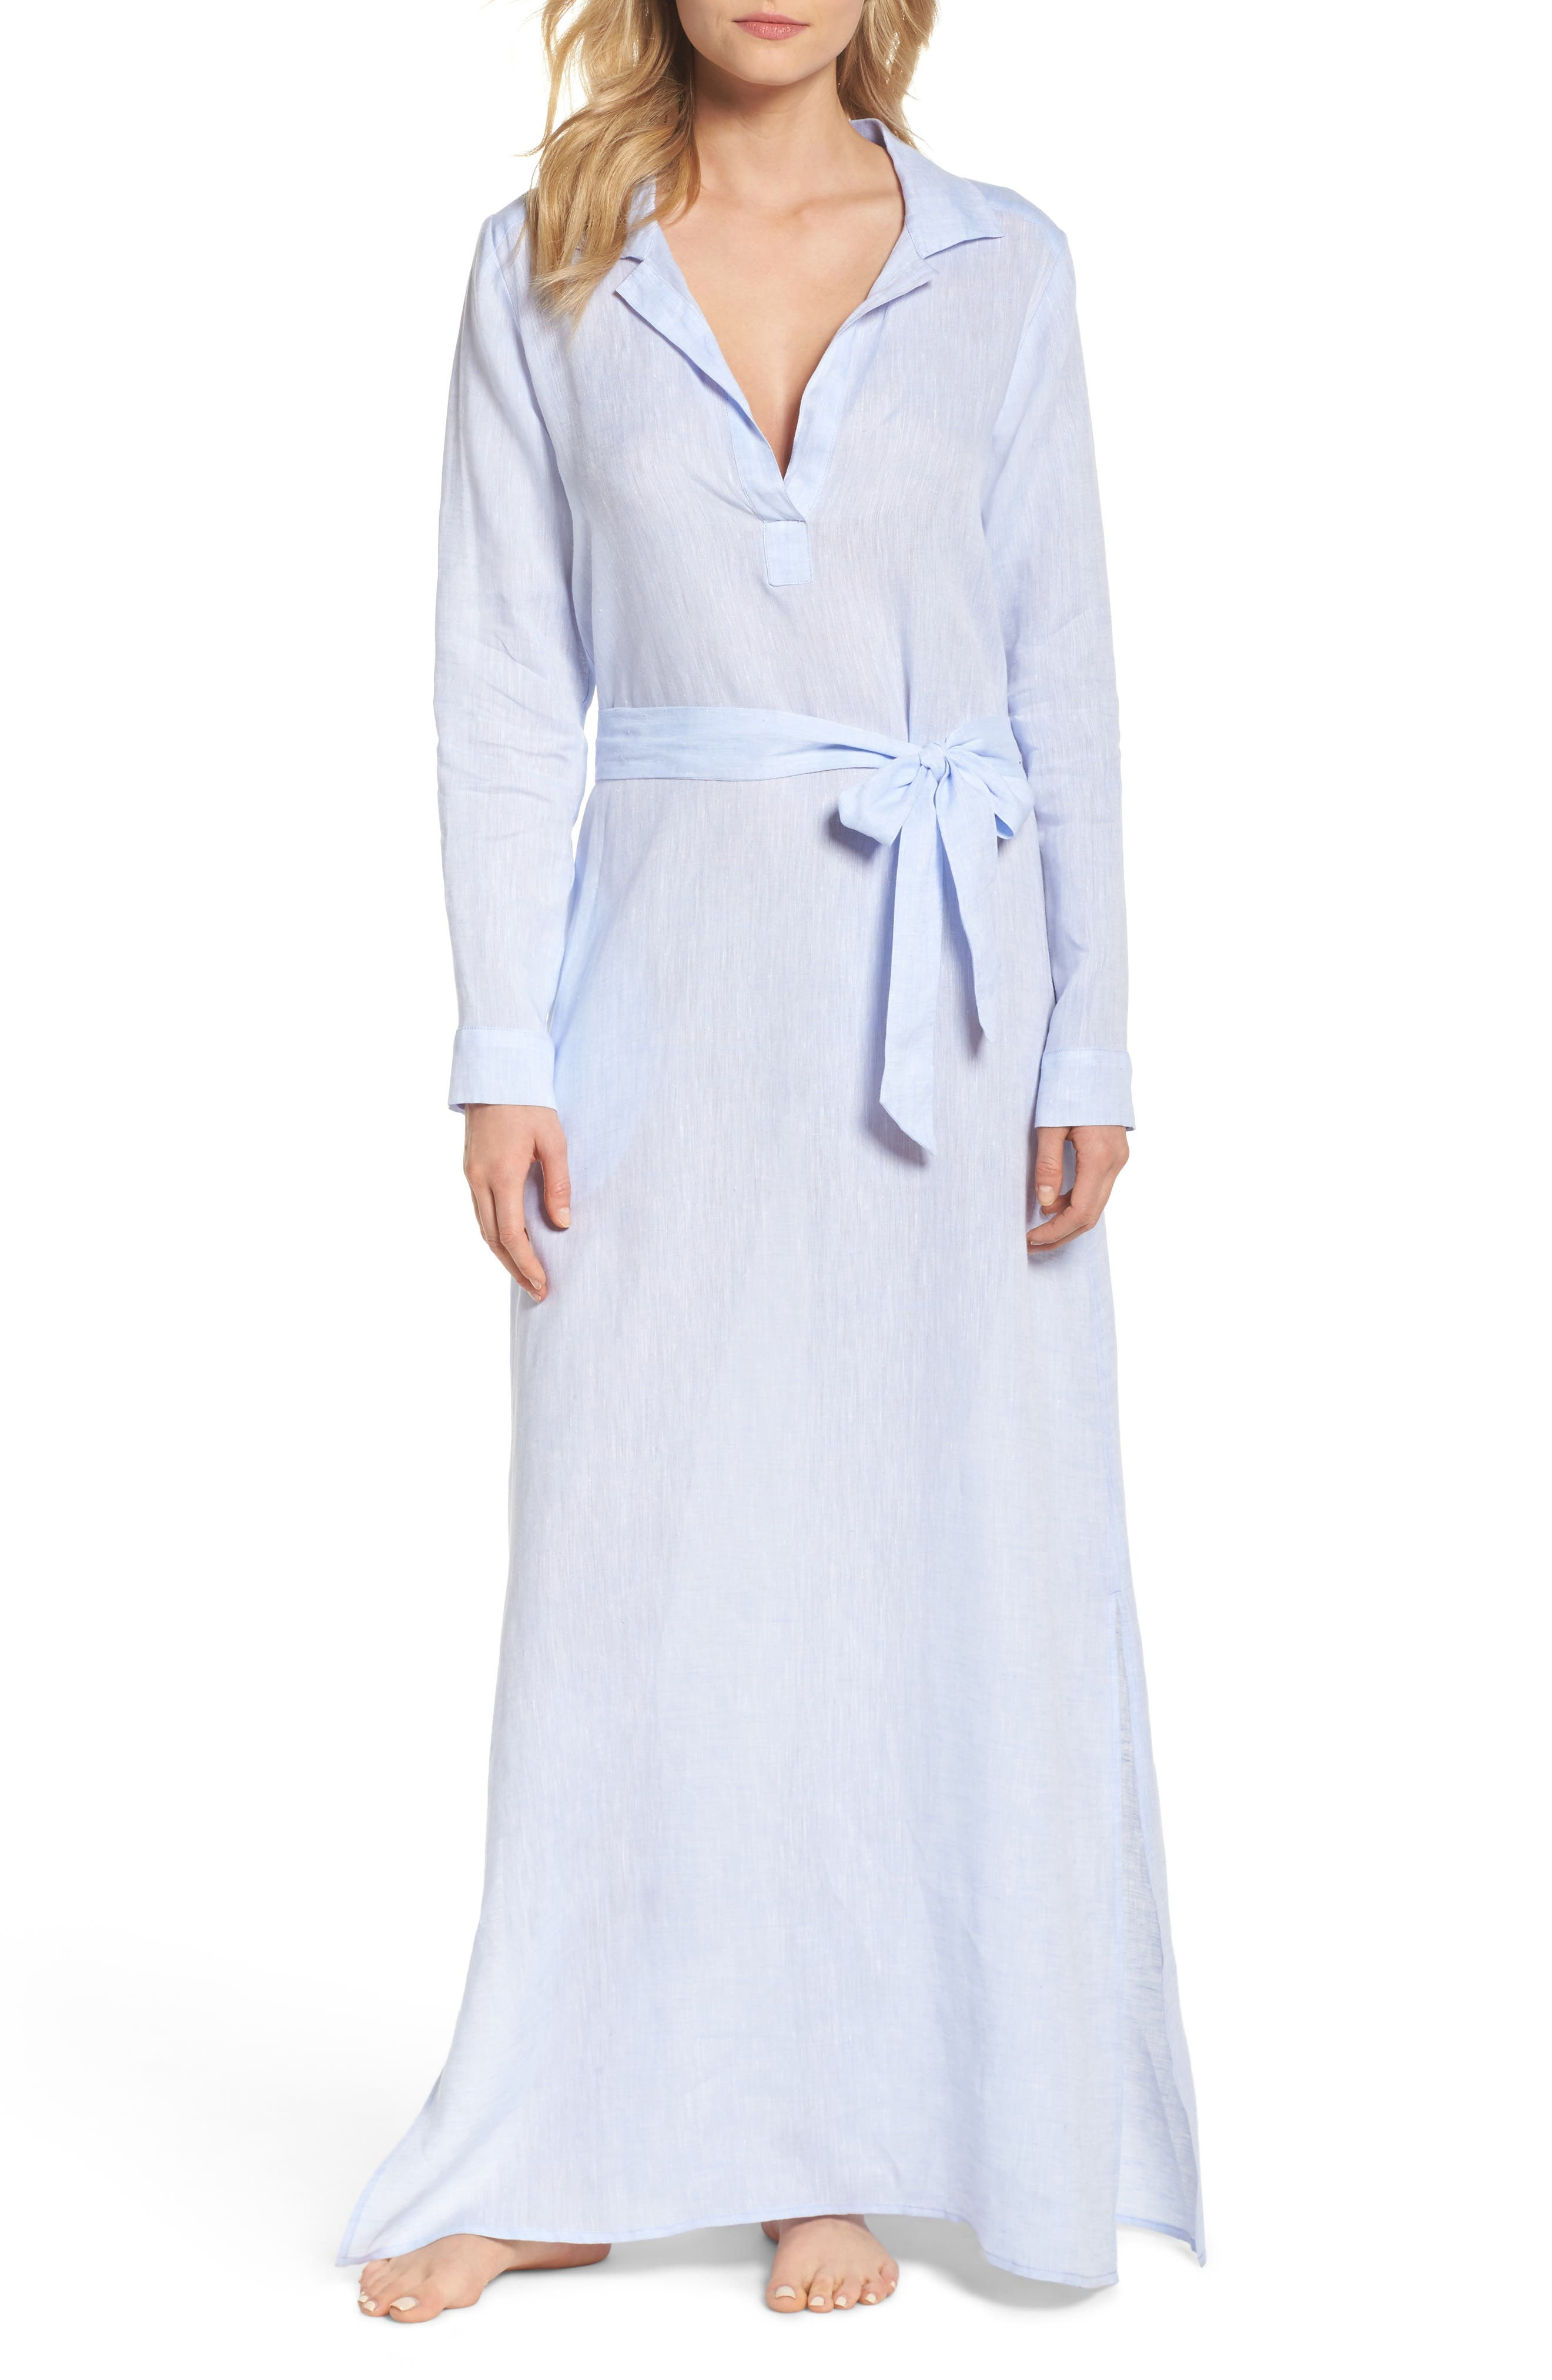 Alternate Image 1 Selected - Pour Les Femmes Linen Maxi Sleep Shirtdress